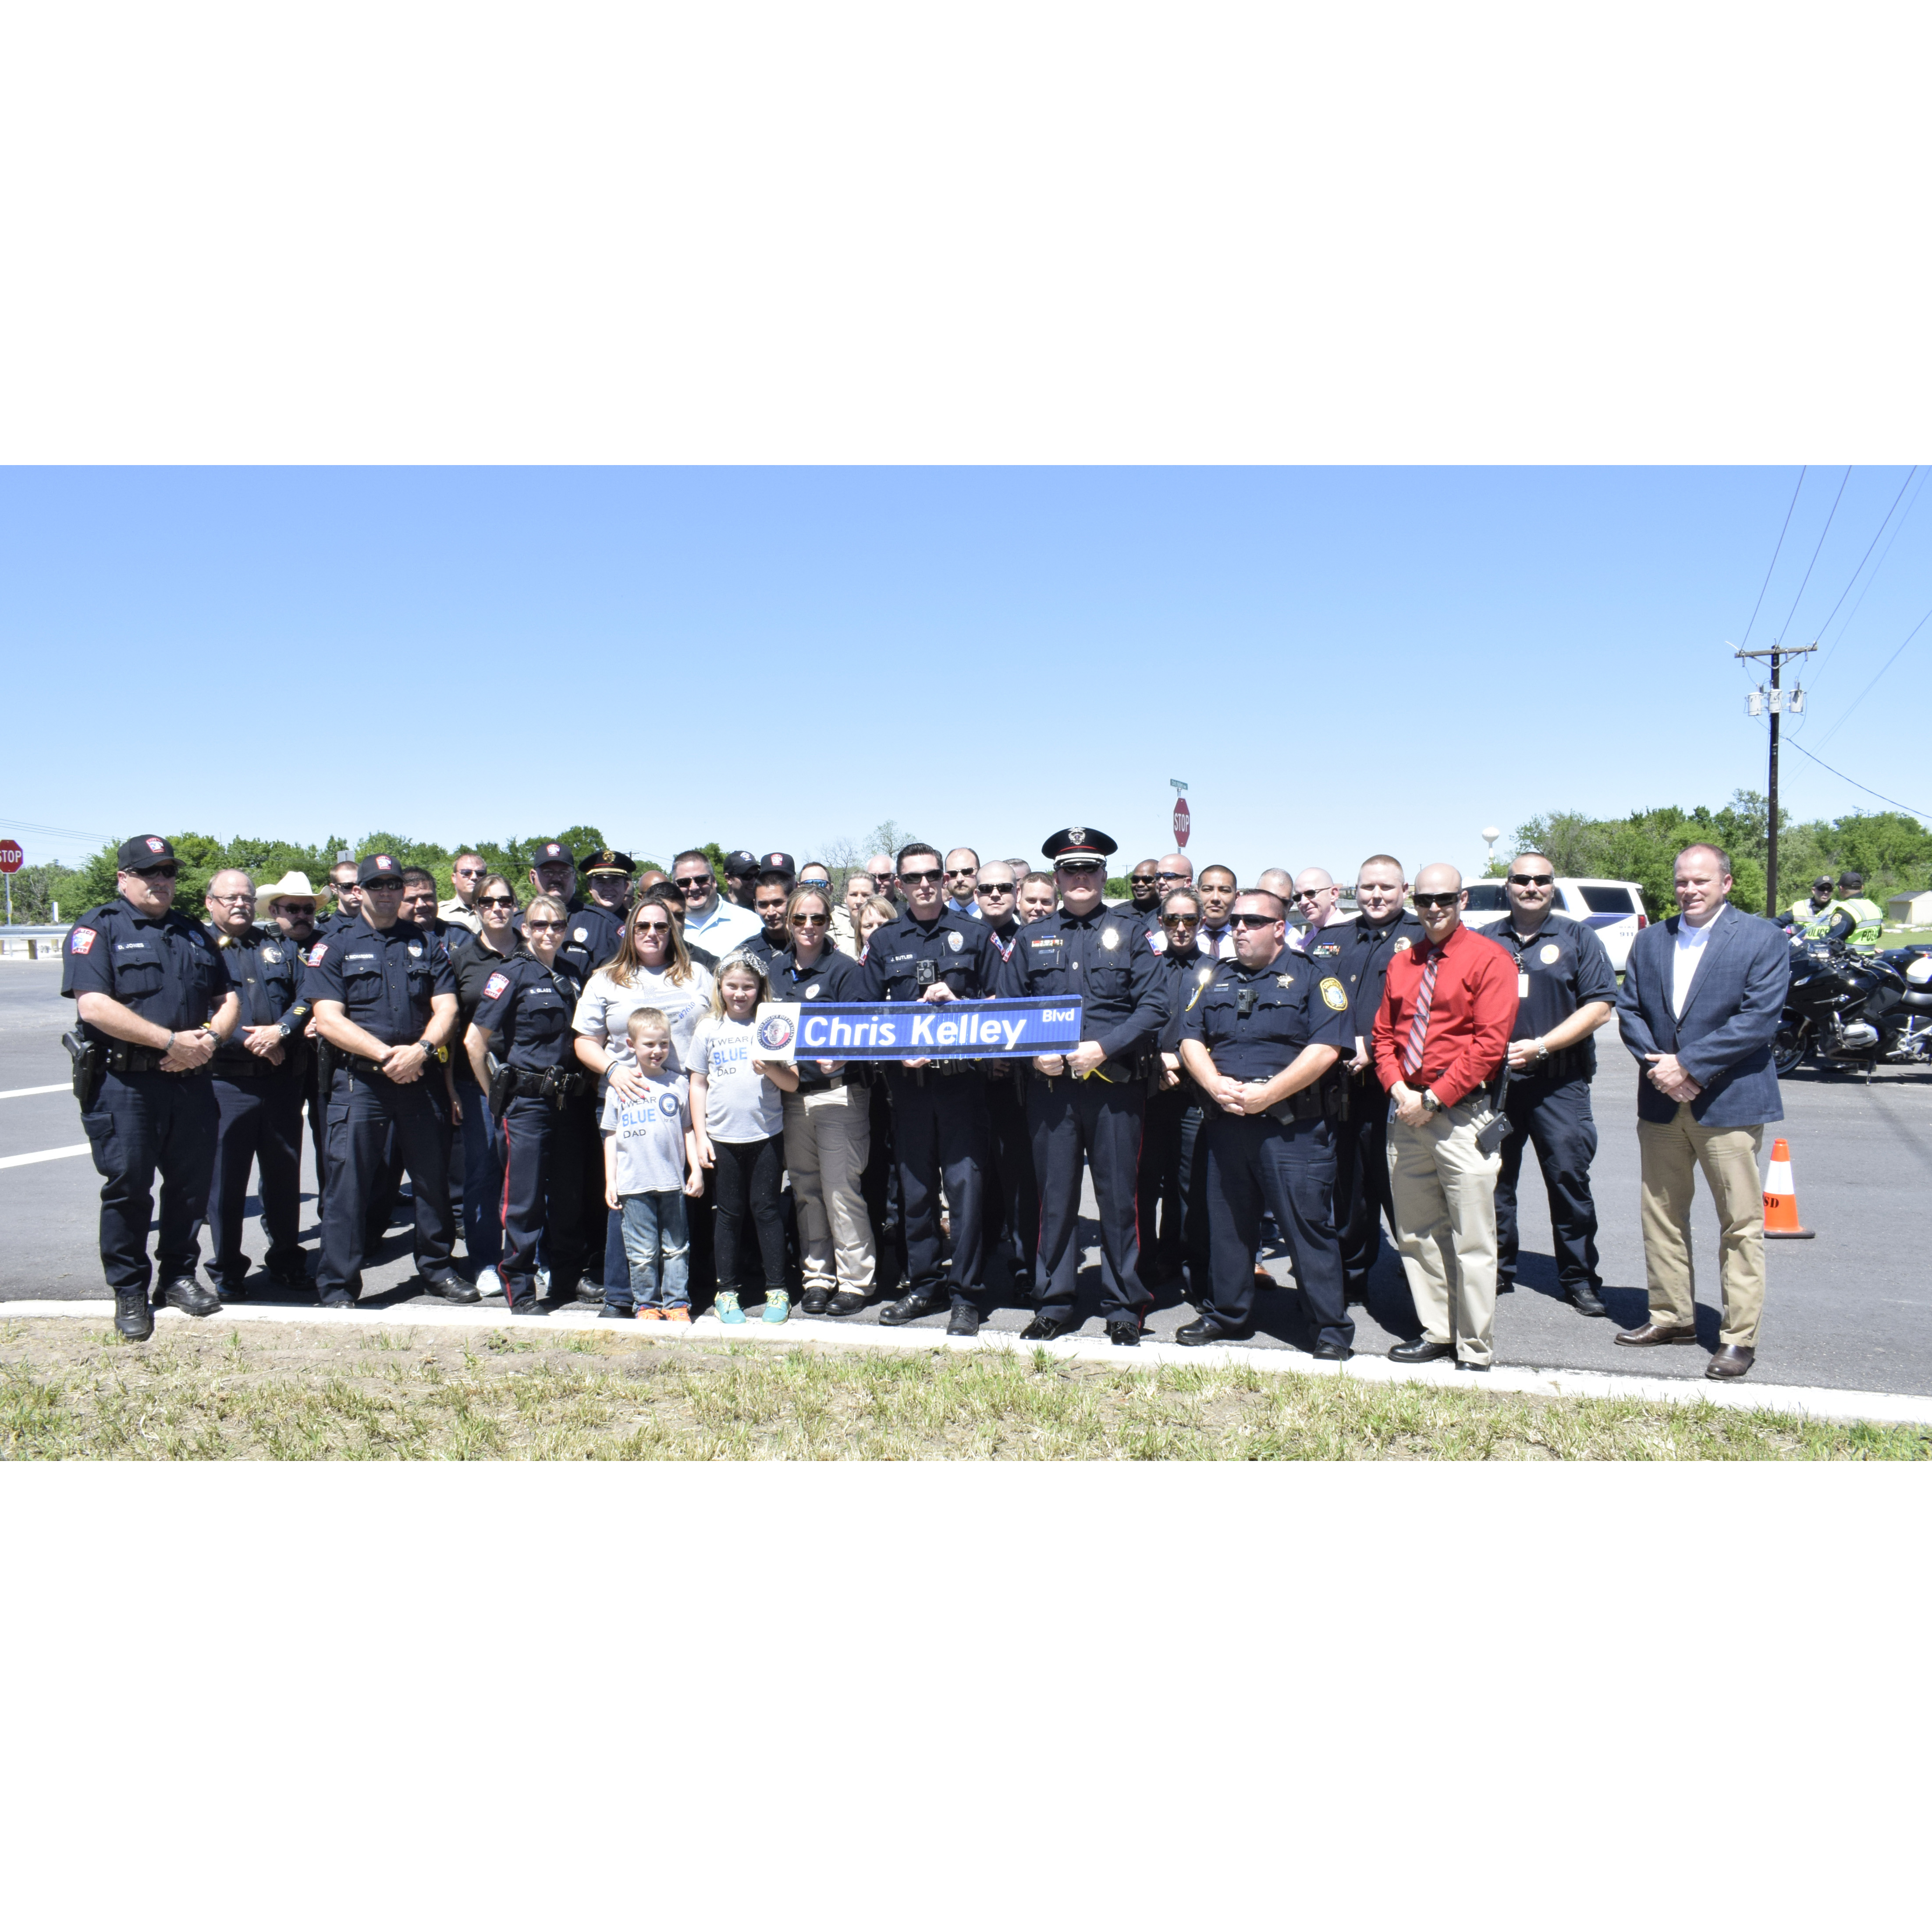 The Hutto Police Department and Chris Kelley's family attended the ribbon cutting ceremony and dedication. copy